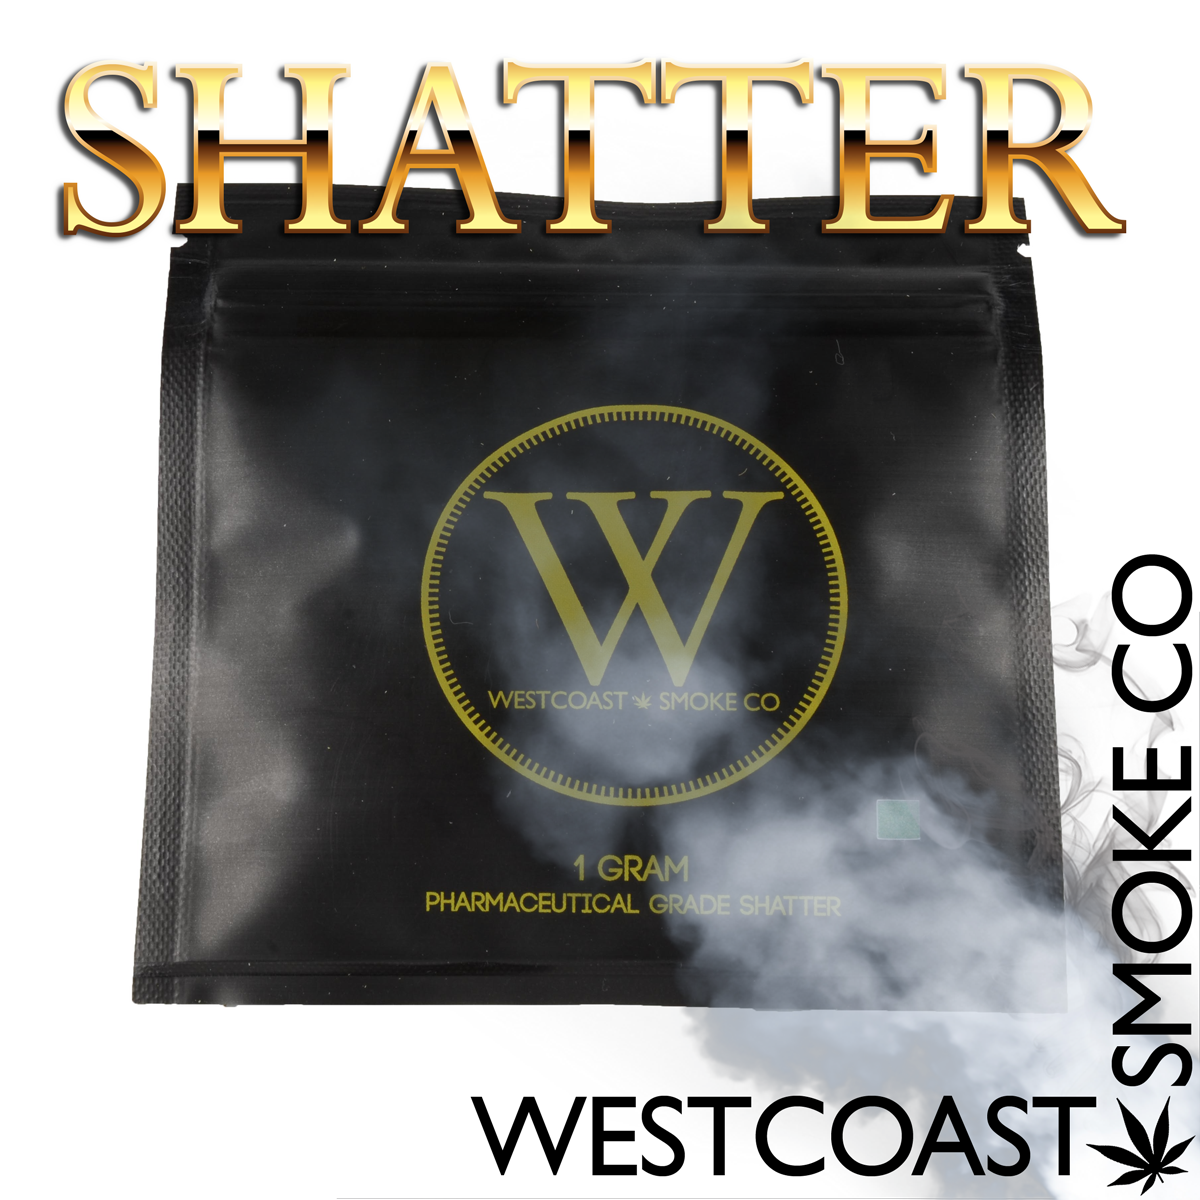 West Coast Smoke Co. Shatter by BC Bud Store - Image © 2020 BC Bud Store. All Rights Reserved.